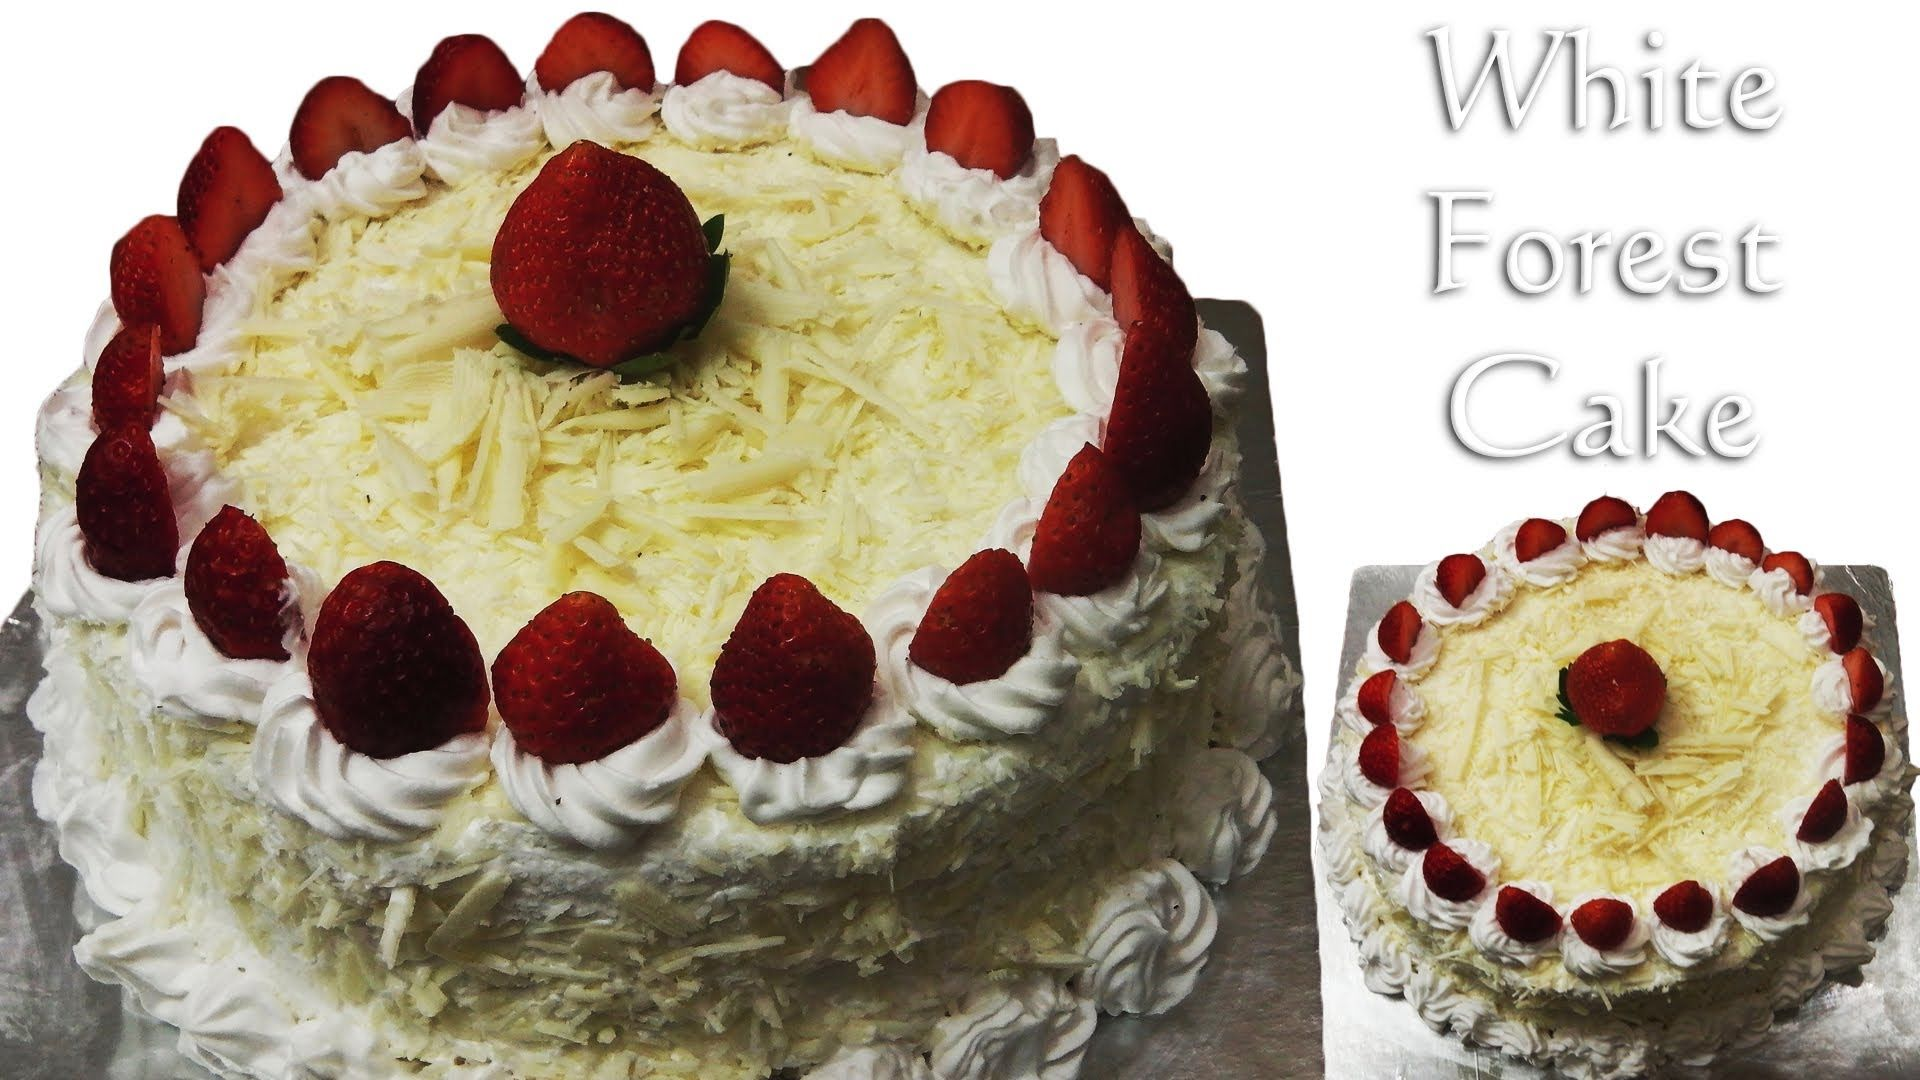 White Forest Cake Recipe In Pressure Cooker: Cooker Cake, Eggless-Without Condensed